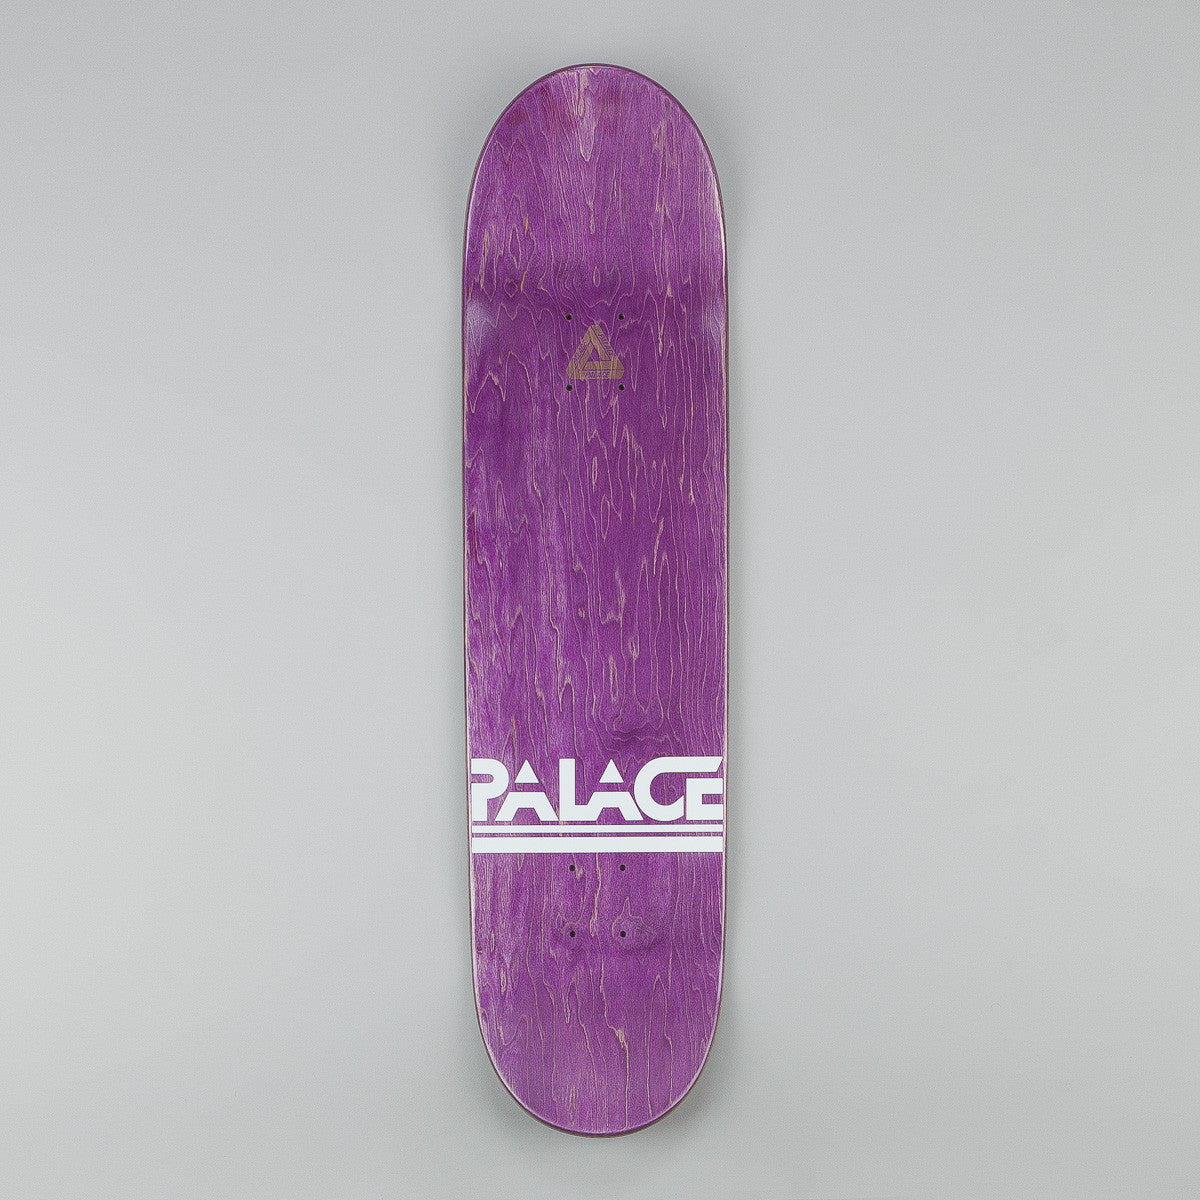 Palace GTI Yellow Deck - 8.3""